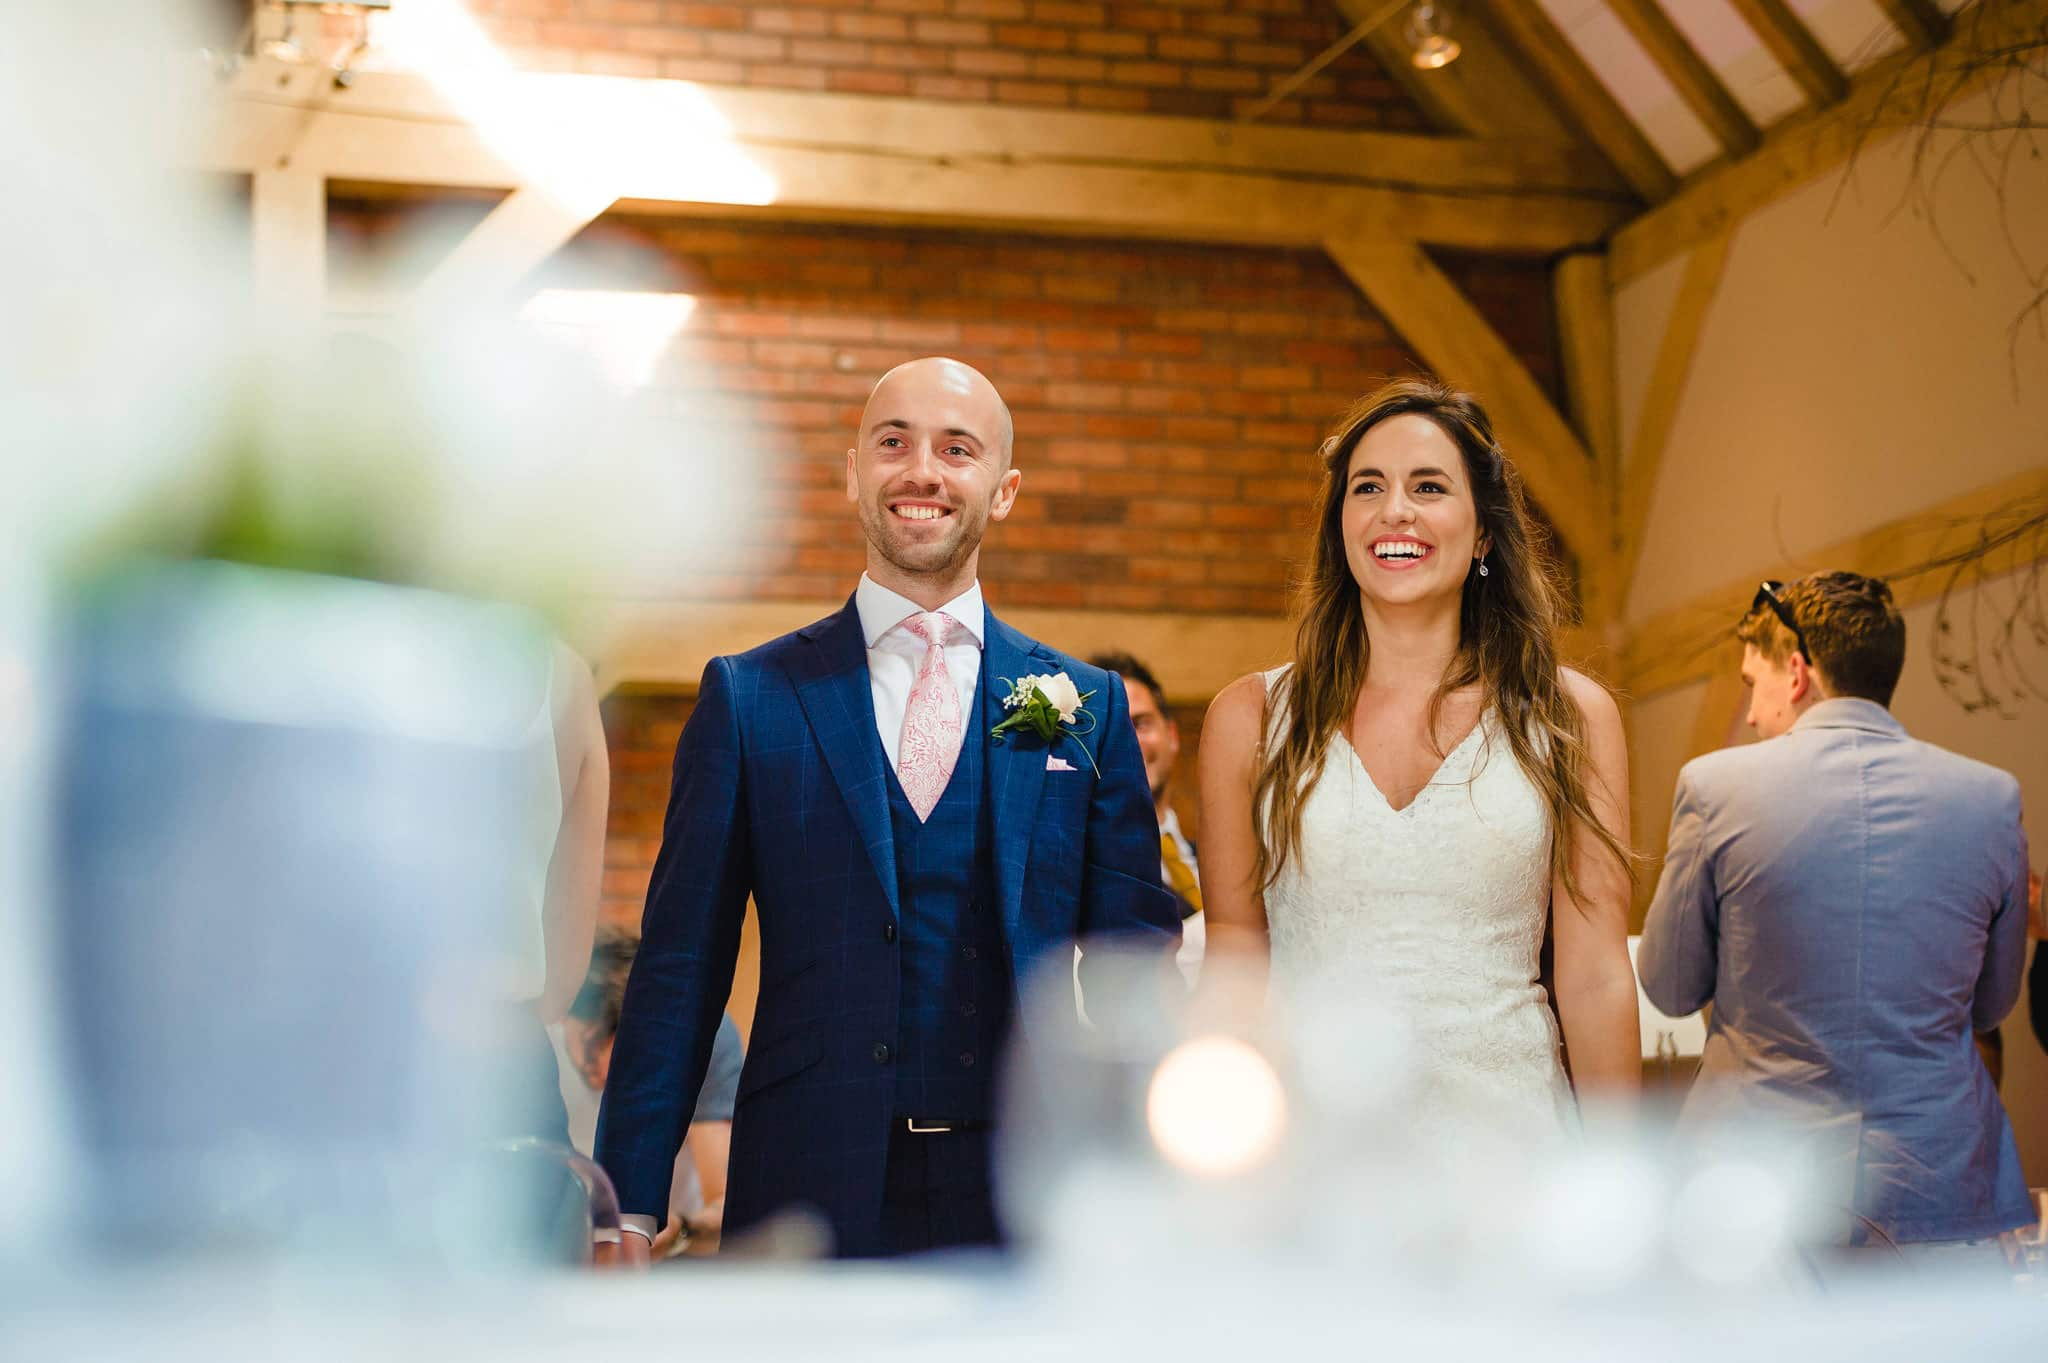 wedding at redhouse barn 138 - Wedding at Redhouse Barn in Stoke Prior, Worcestershire